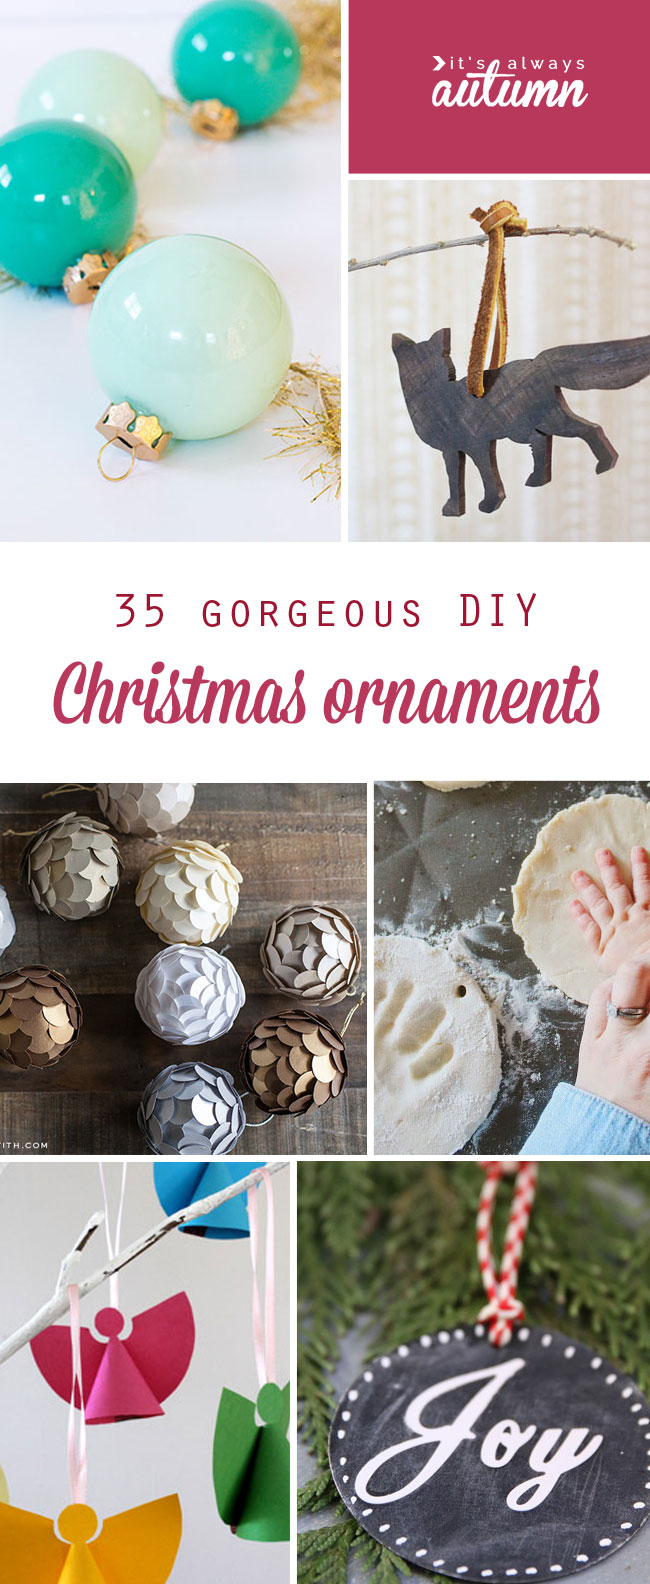 Handmade christmas tree ornaments ideas - 35 Gorgeous Diy Christmas Ornaments To Make This Season Easy Beautiful And Modern